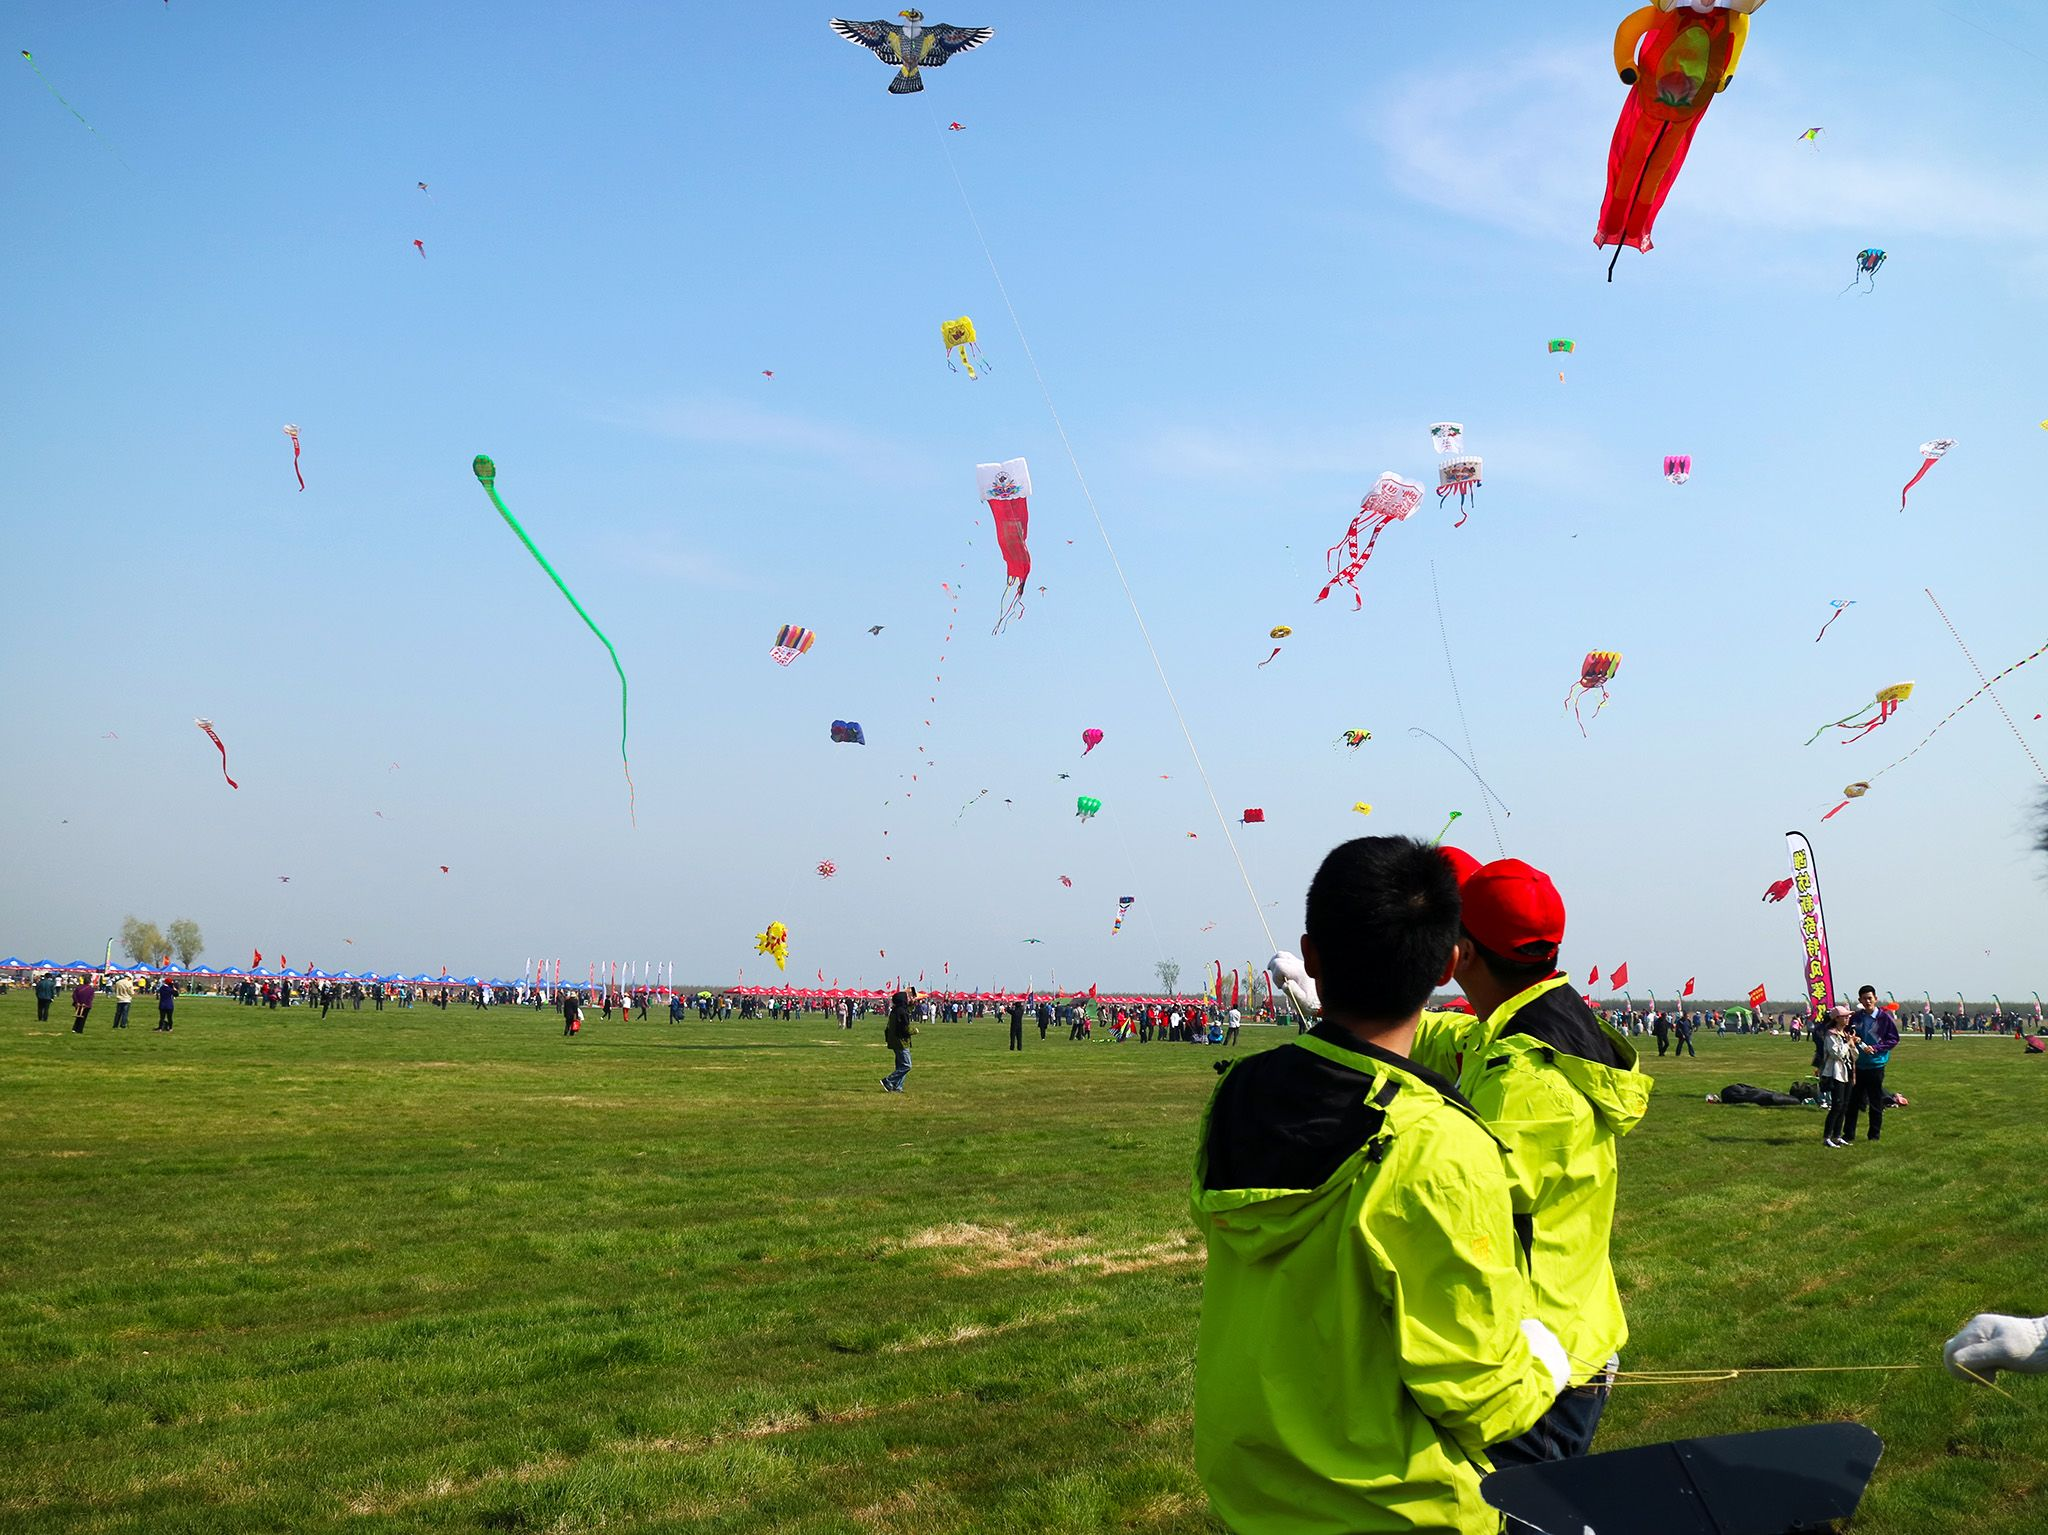 Weifang, Shandong Province, China: Kite makers showing off their creations at Weifang... [Foto del giorno - August 2018]